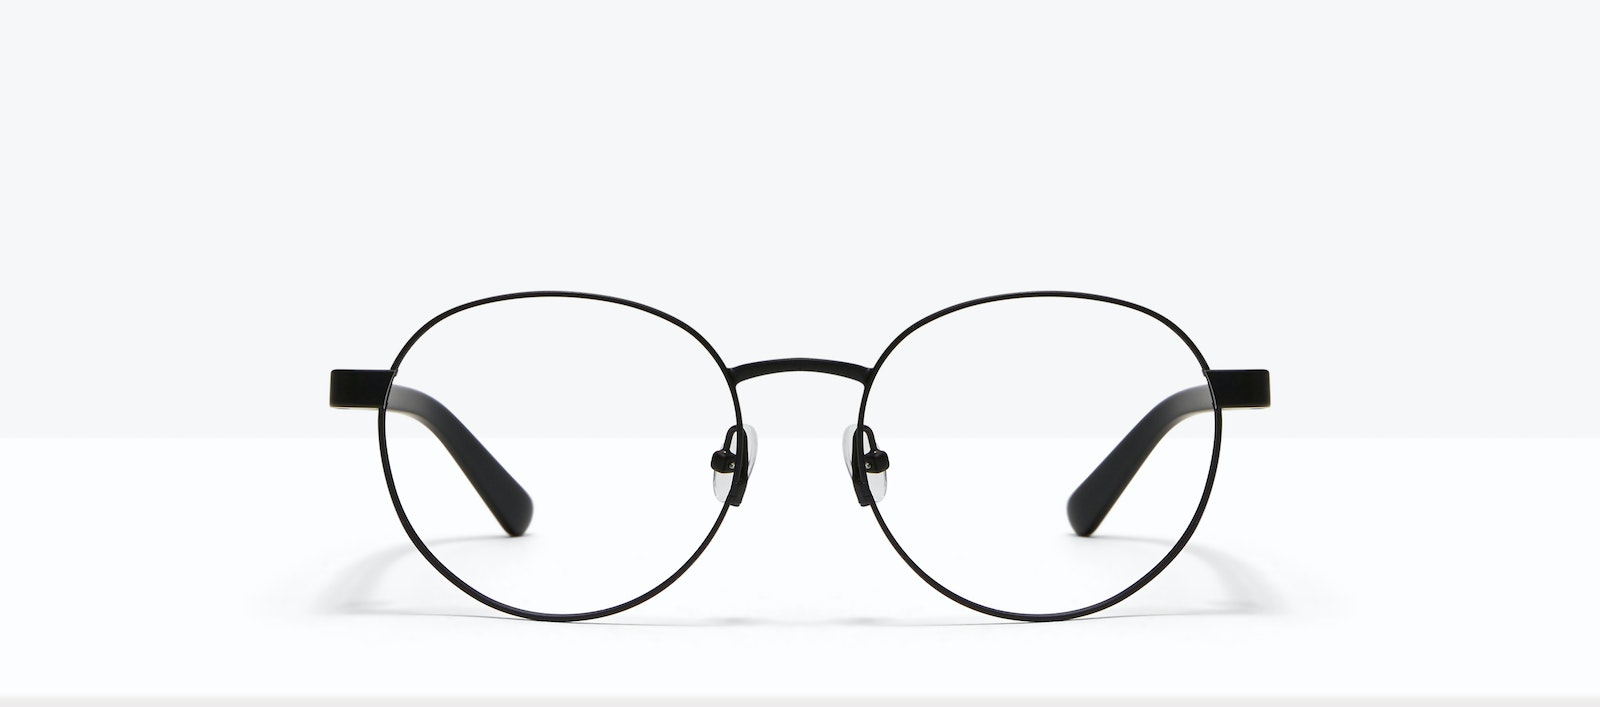 Affordable Fashion Glasses Round Eyeglasses Men Alter Black Front